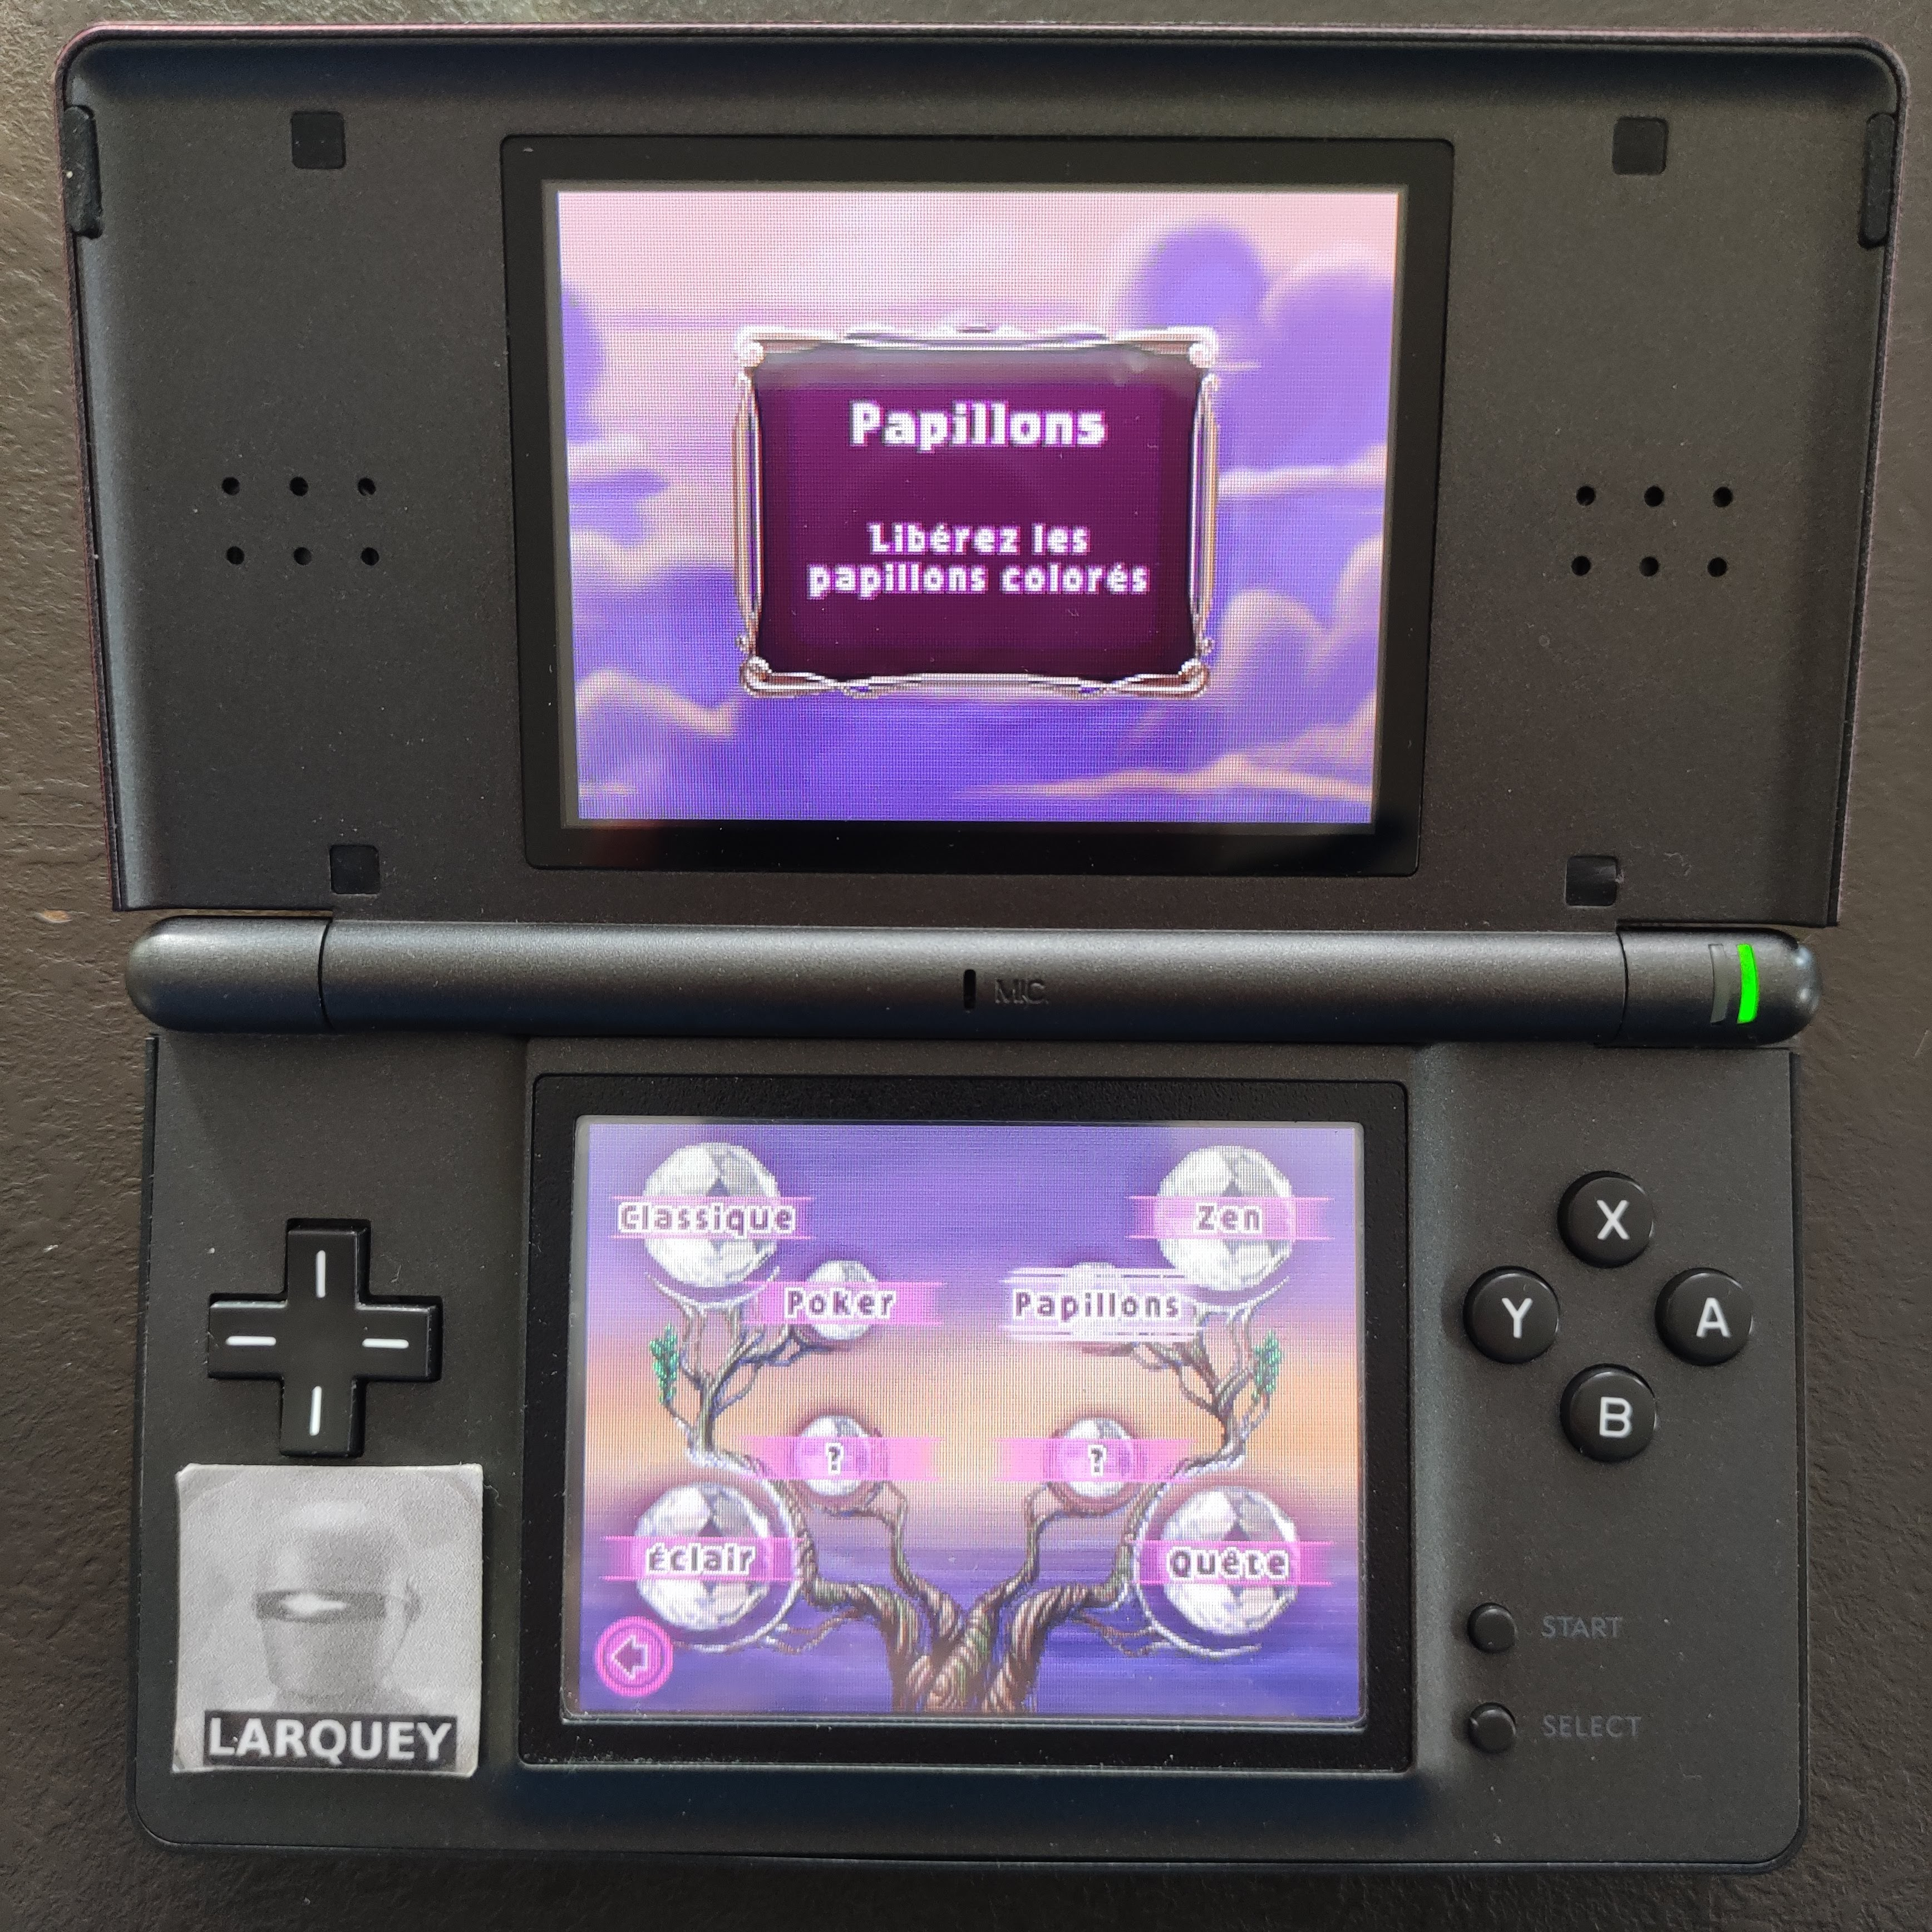 Larquey: Bejeweled 3: Butterflies [Number of Star Gems] (Nintendo DS) 3 points on 2020-09-27 04:04:15